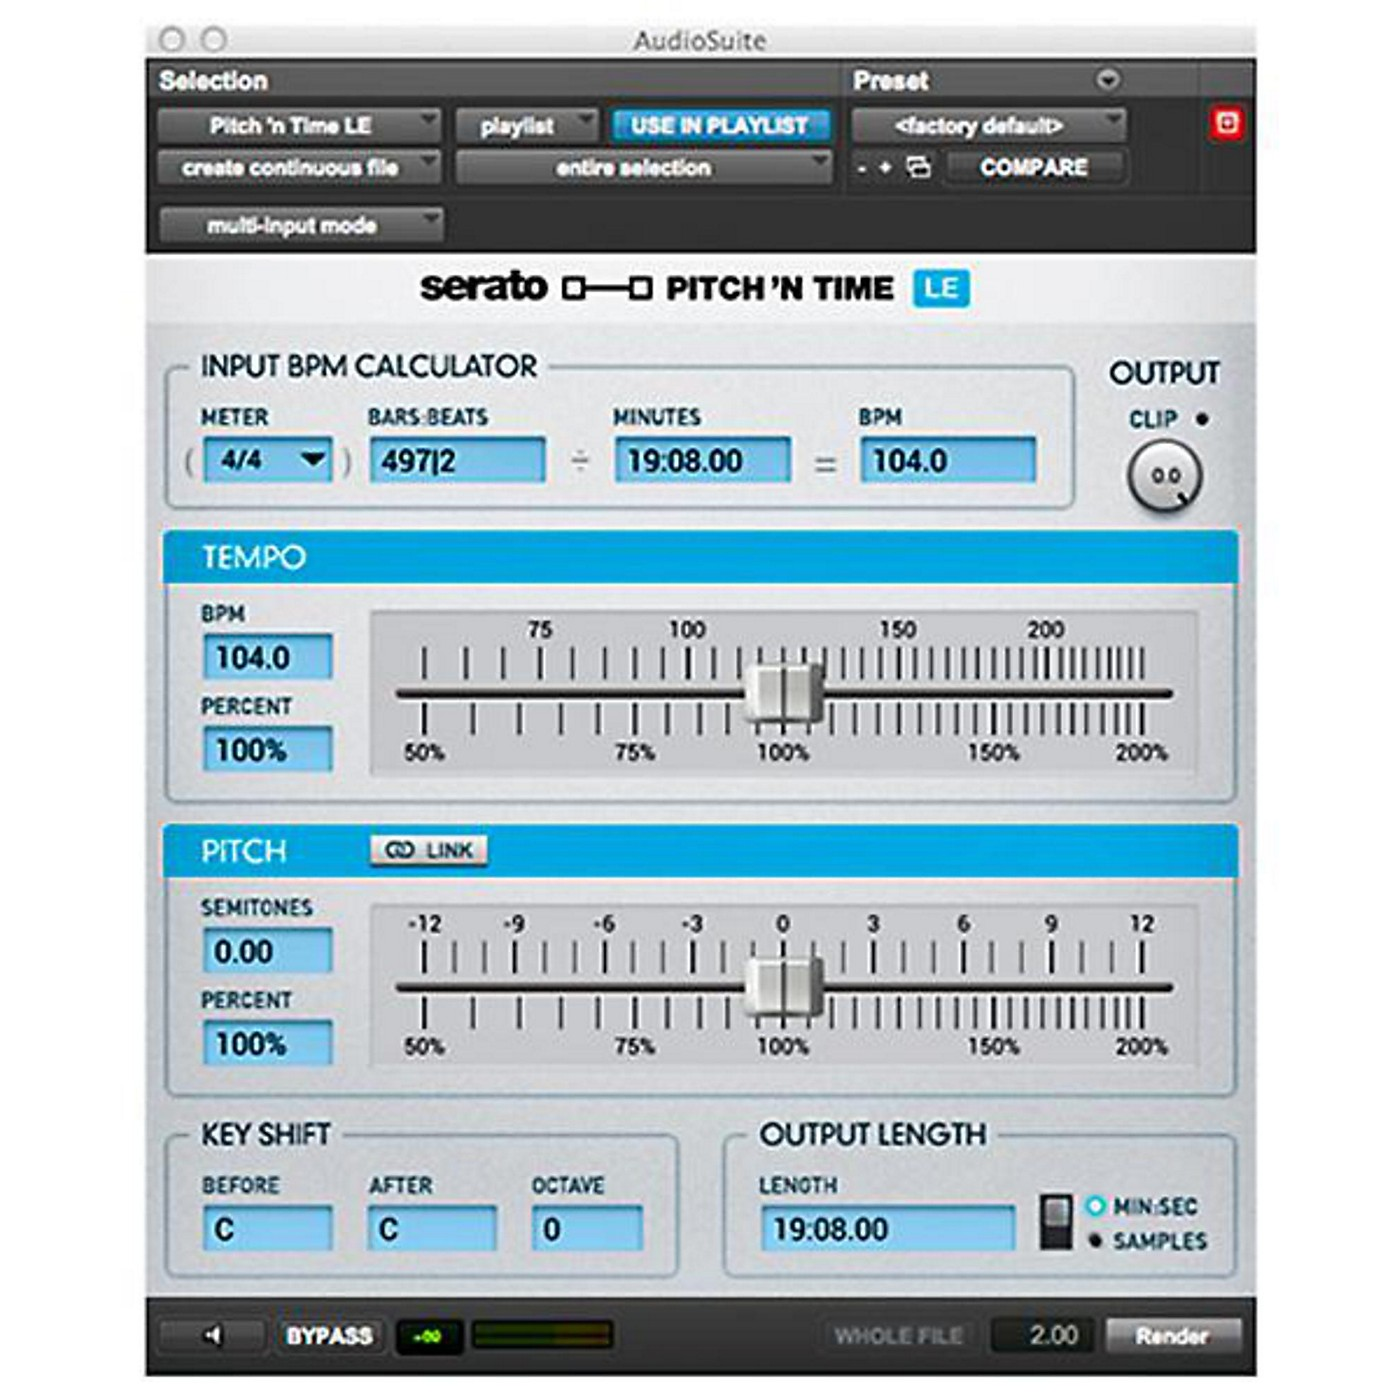 SERATO Pitch 'n Time LE 3.0 Software Download thumbnail